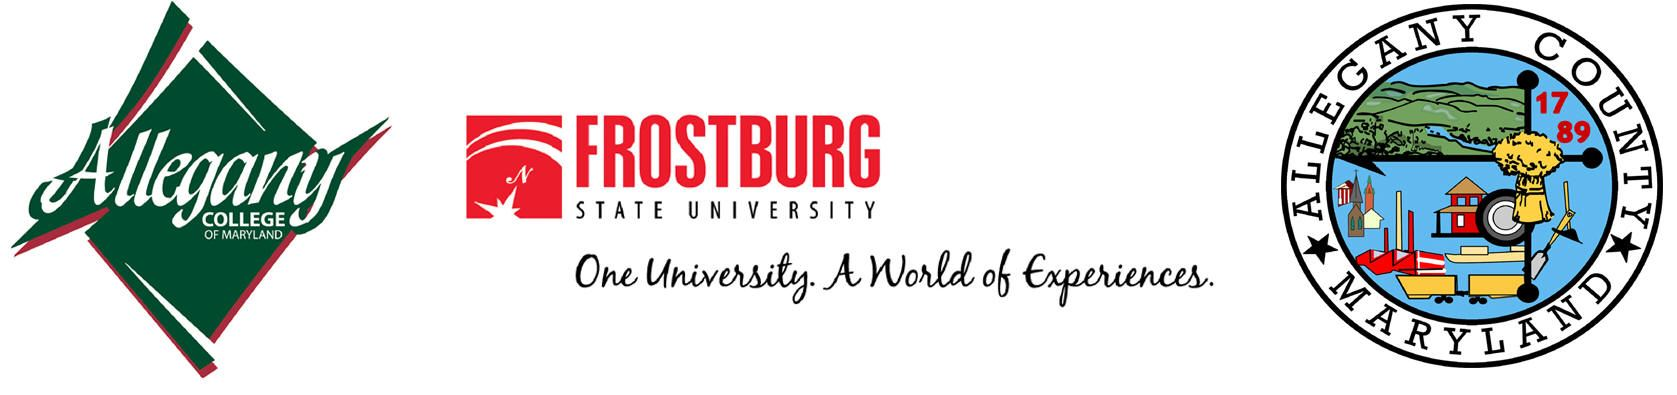 A banner of logos for Allegany College of Maryland, Frostburg State University, and the Allegany Cou